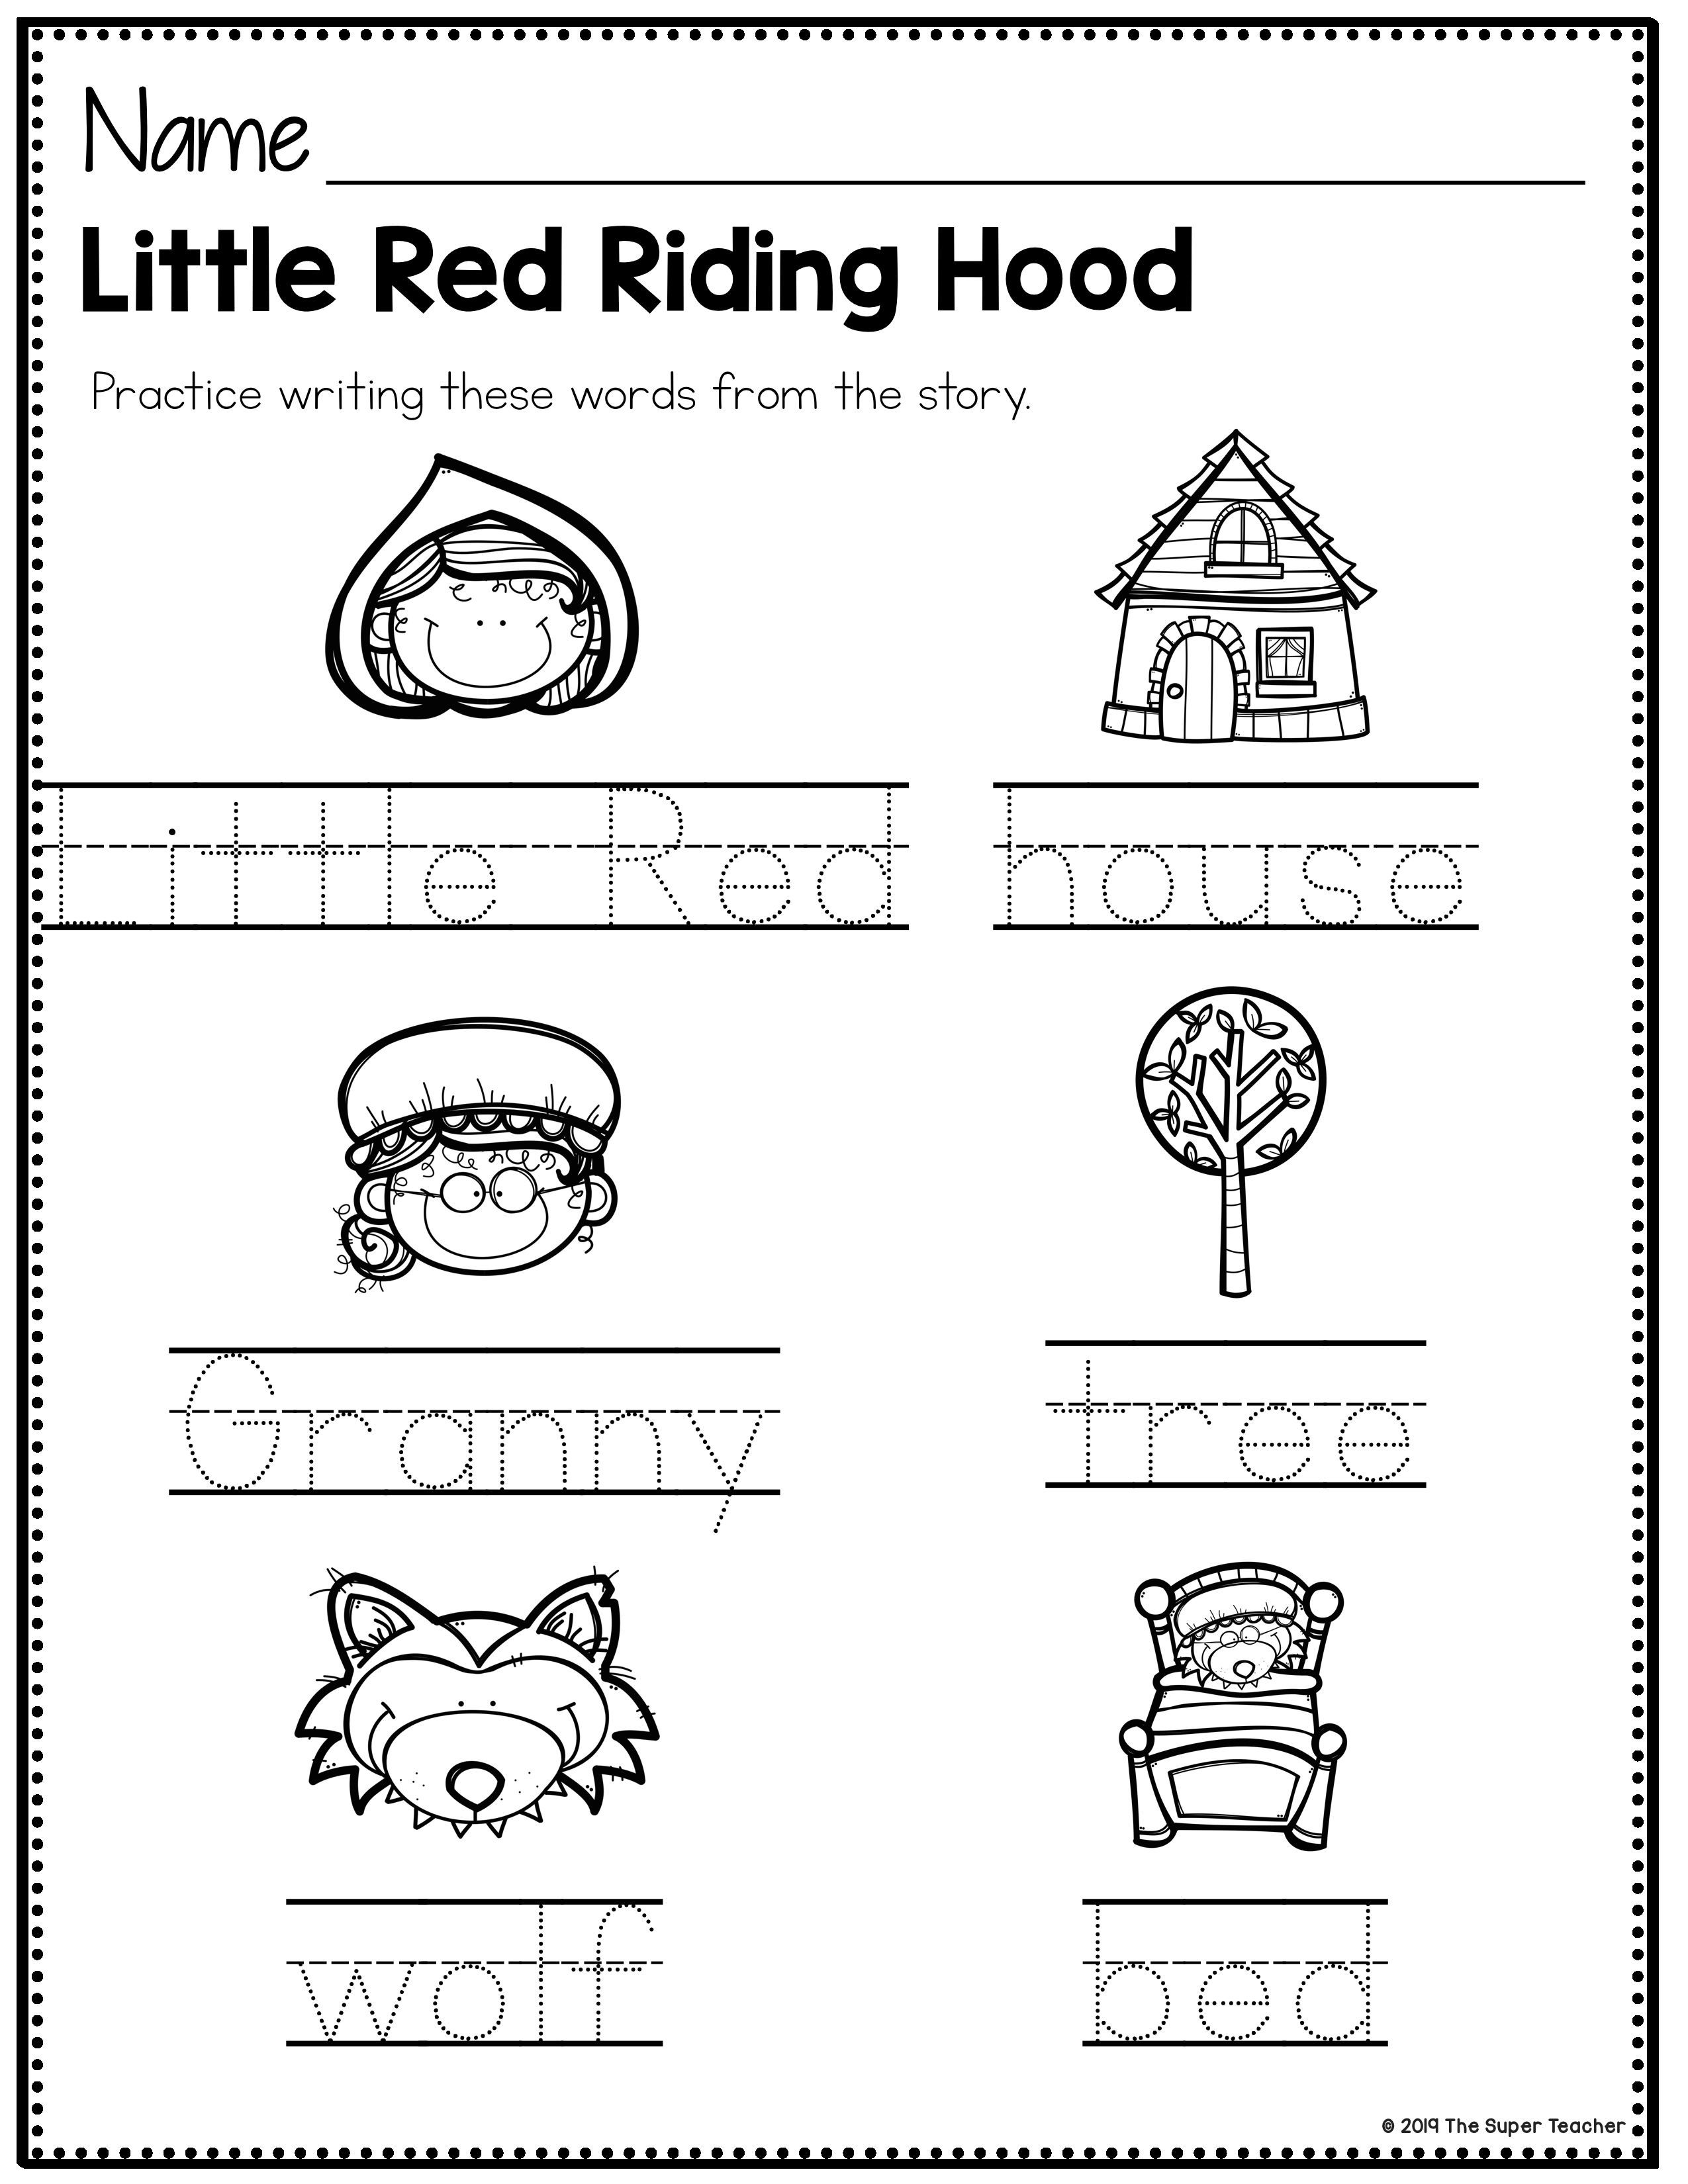 Little Red Riding Hood Story Elements And Story Retelling Worksheets Pack Red Riding Hood Story Teaching Story Elements Little Red Riding Hood